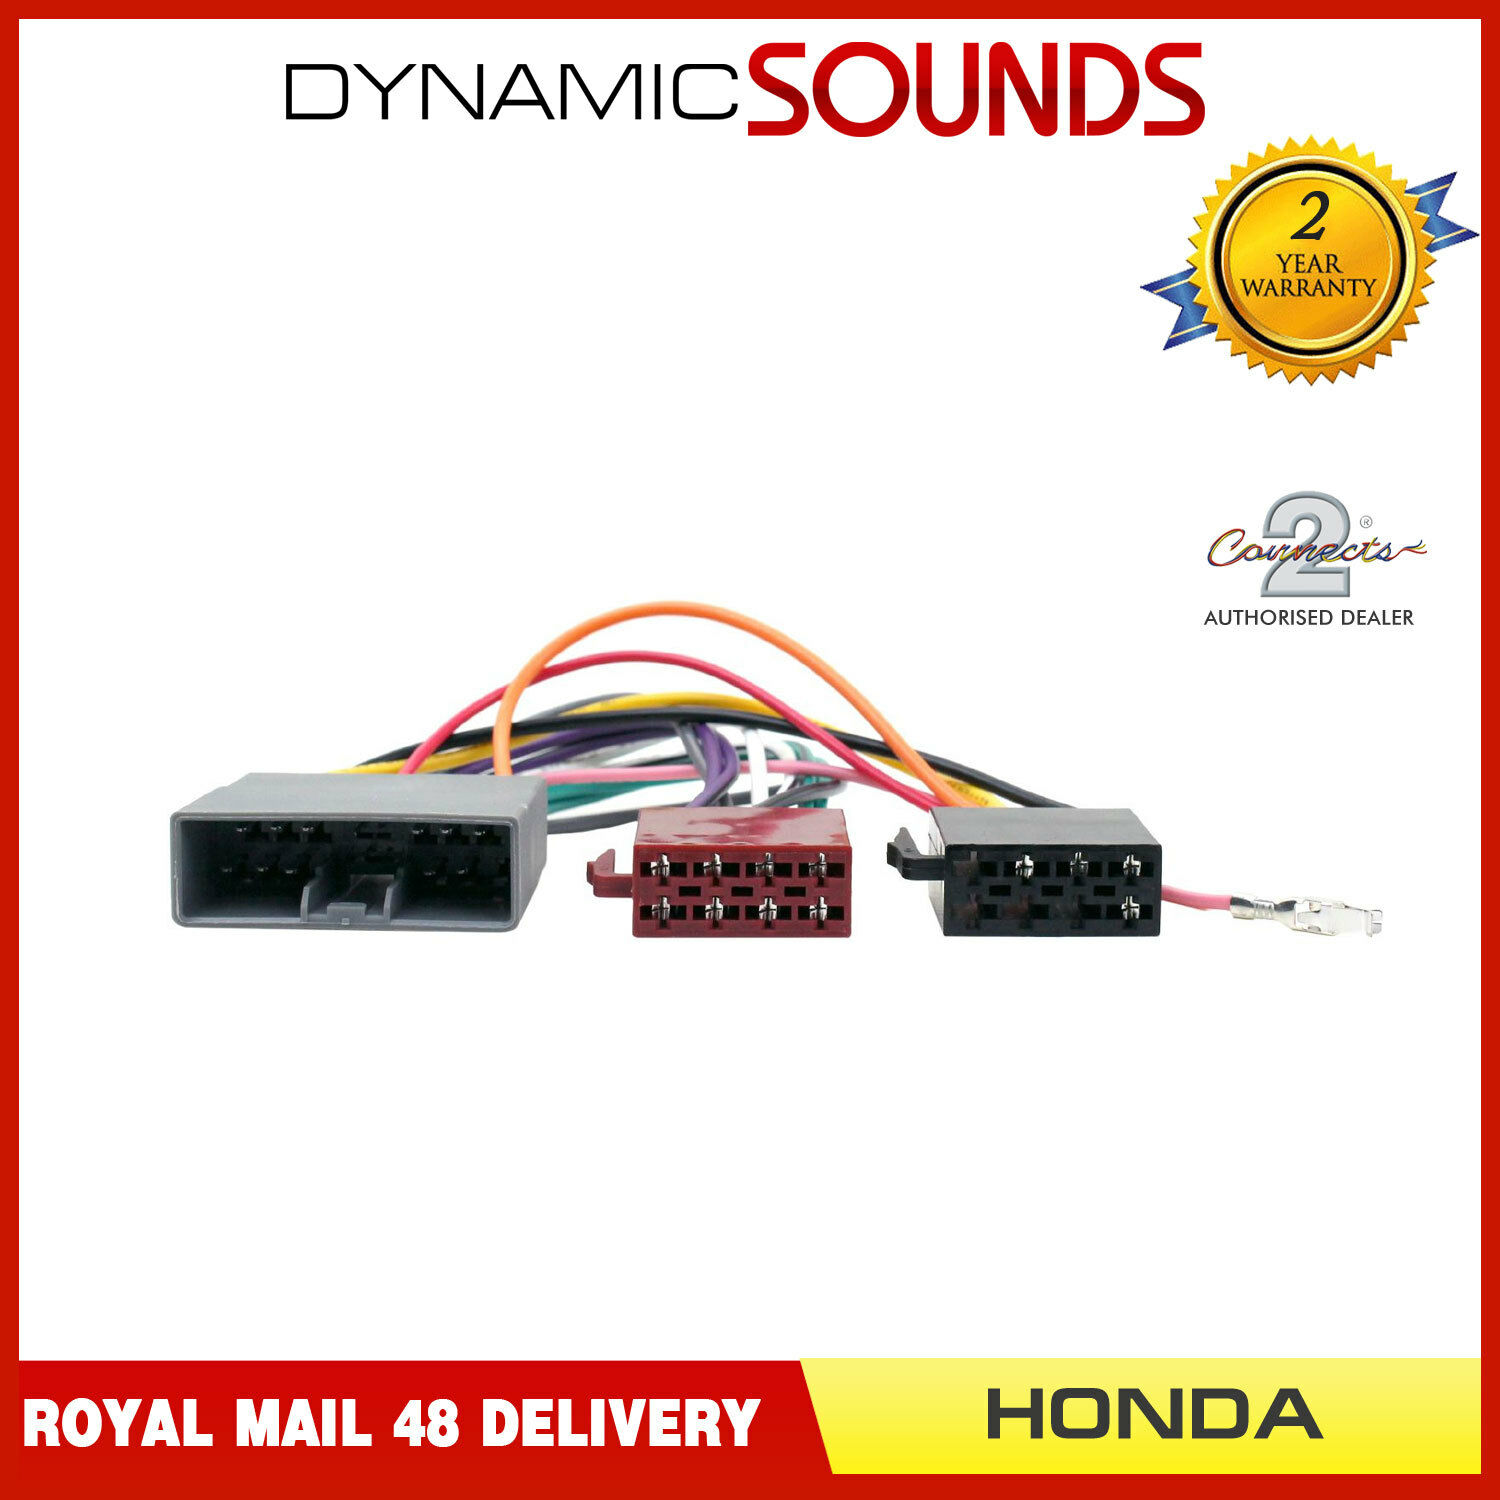 Ct20hd04 Car Stereo Iso Wiring Harness Adaptor Lead For Honda Civic Crv 1 Of 2free Shipping